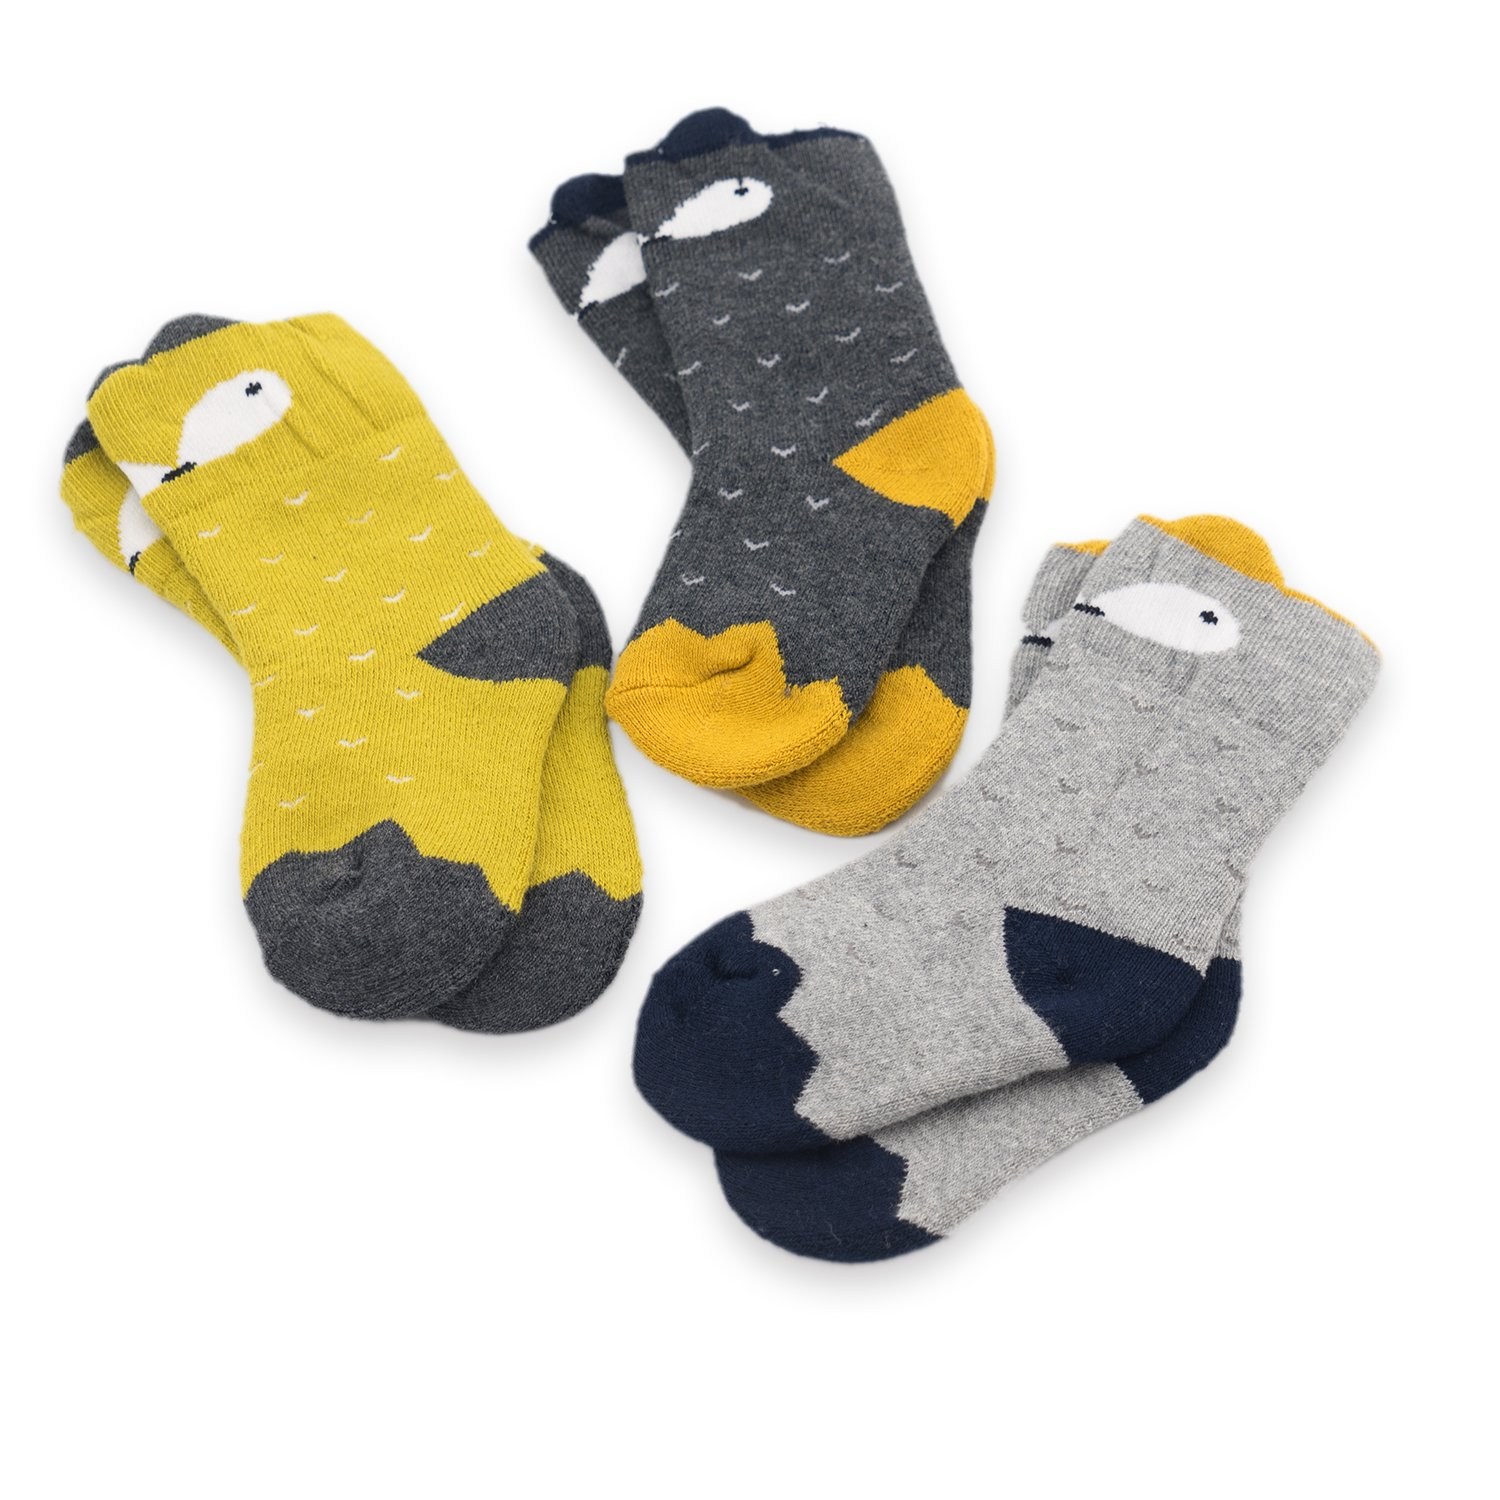 CoCoCute Baby Socks -3 Pairs Thick Winter Toddler Socks Baby Boy and Girl Socks Infant Socks Kid Socks Warm Cotton Crew Socks (S(1-3Y), Fox) by CoCoCute